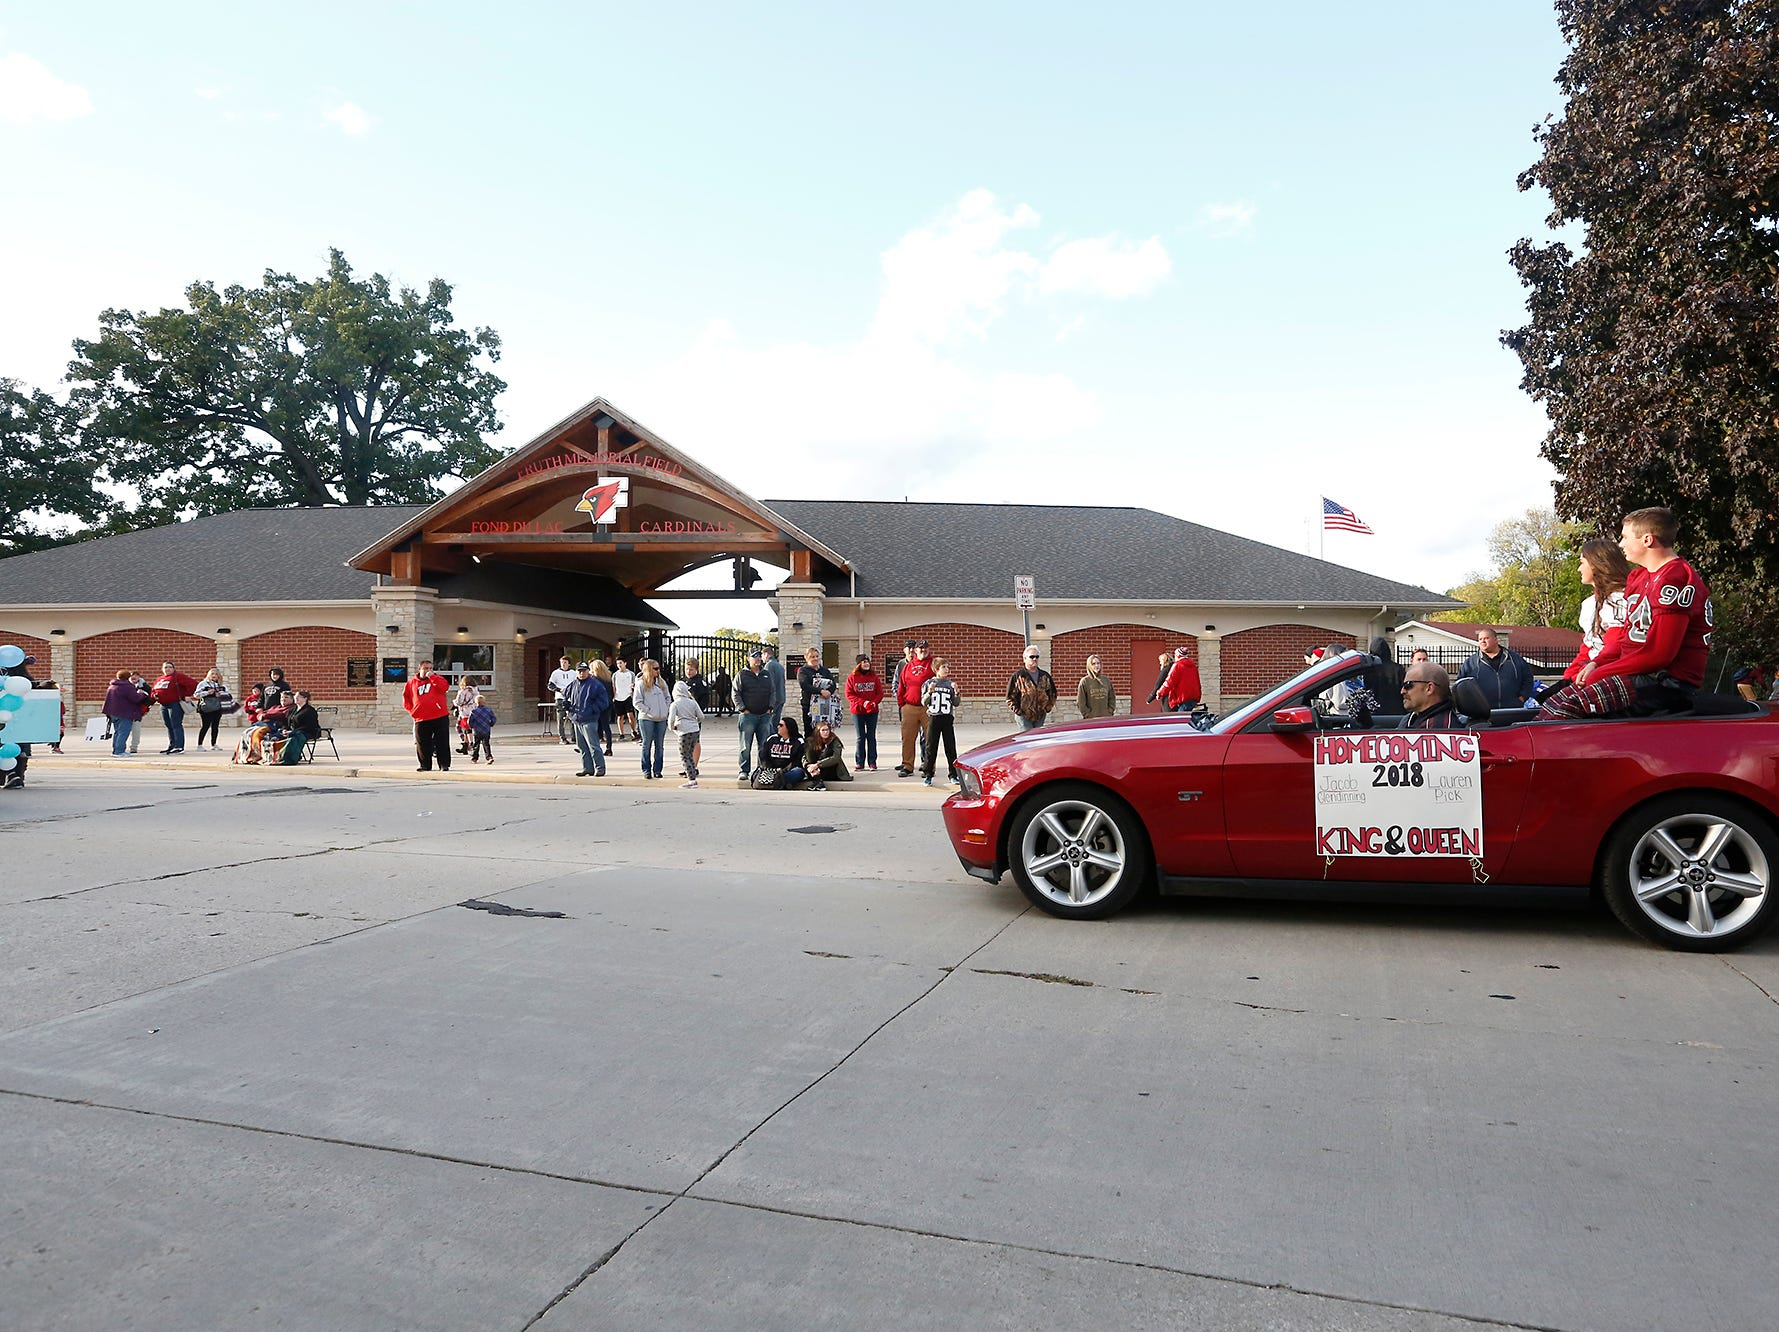 Fond du Lac High School homecoming king and queen Jacob Glendinning and Lauren Pick ride past Fruth Field during the football homecoming parade Friday, Sept. 28, 2018, which went down portions of Martin Avenue and Ninth Street in Fond du Lac, Wisconsin.